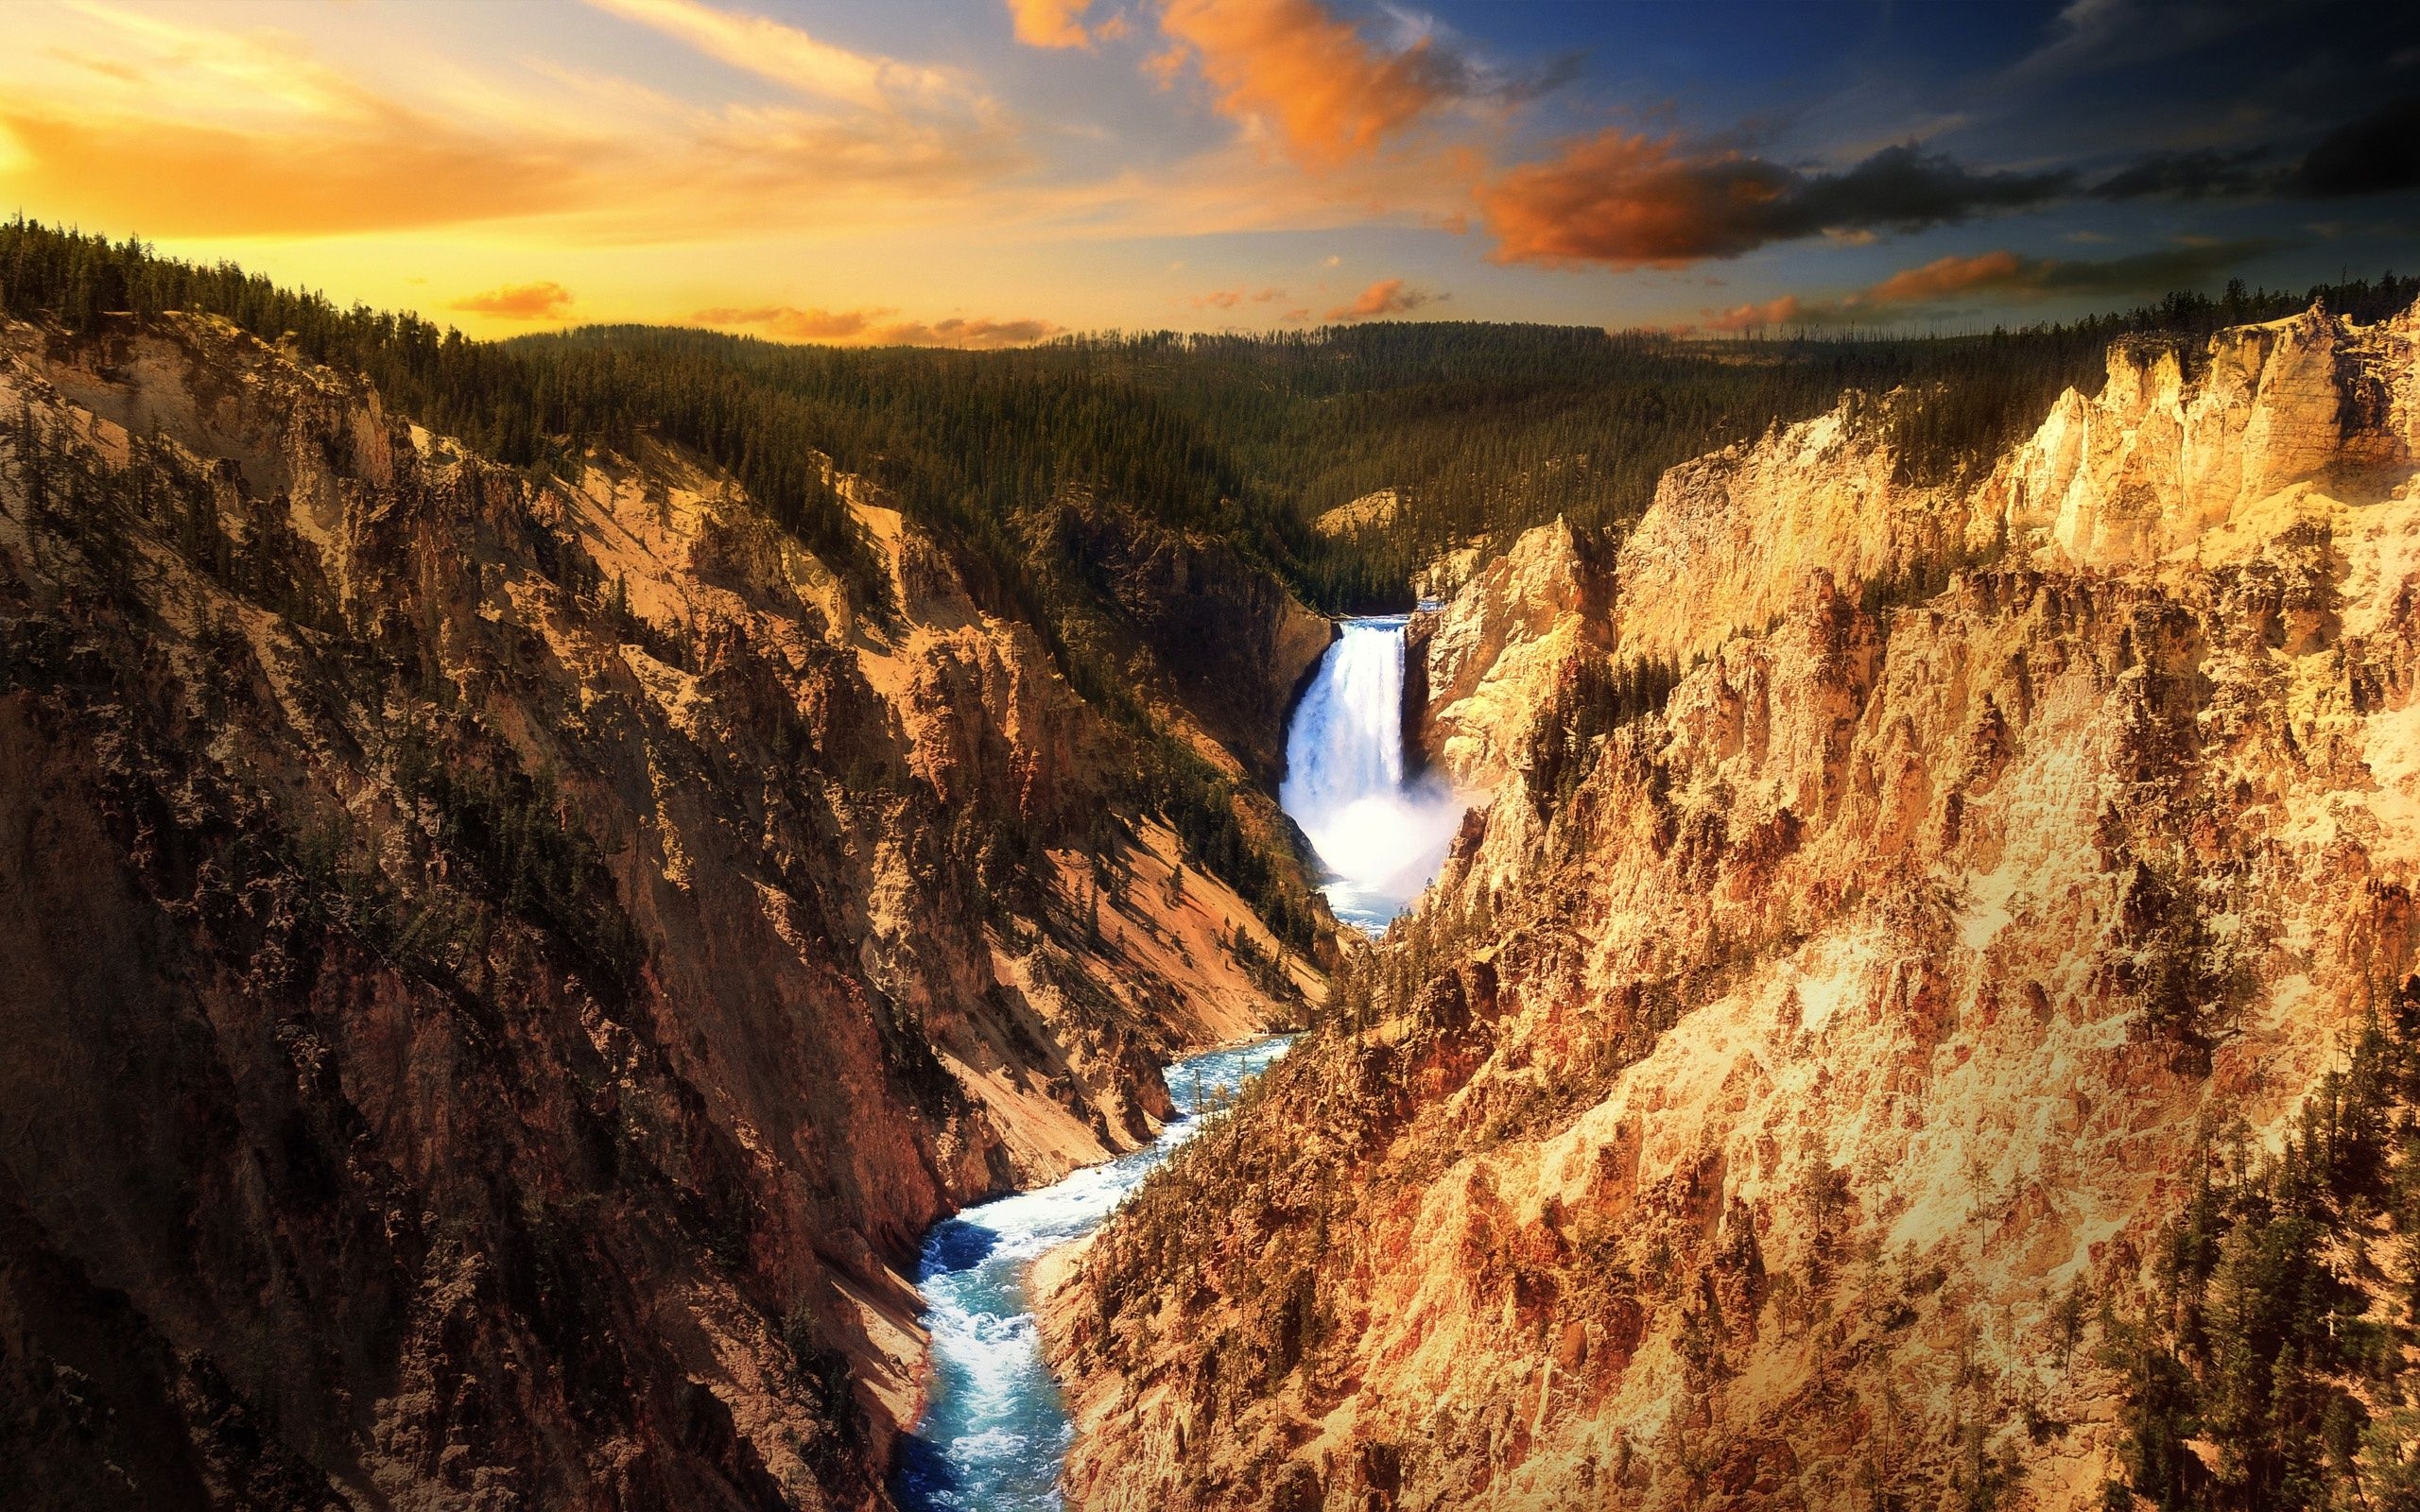 Yellowstone National Park Wallpapers   HD Wallpapers Backgrounds of 2560x1600